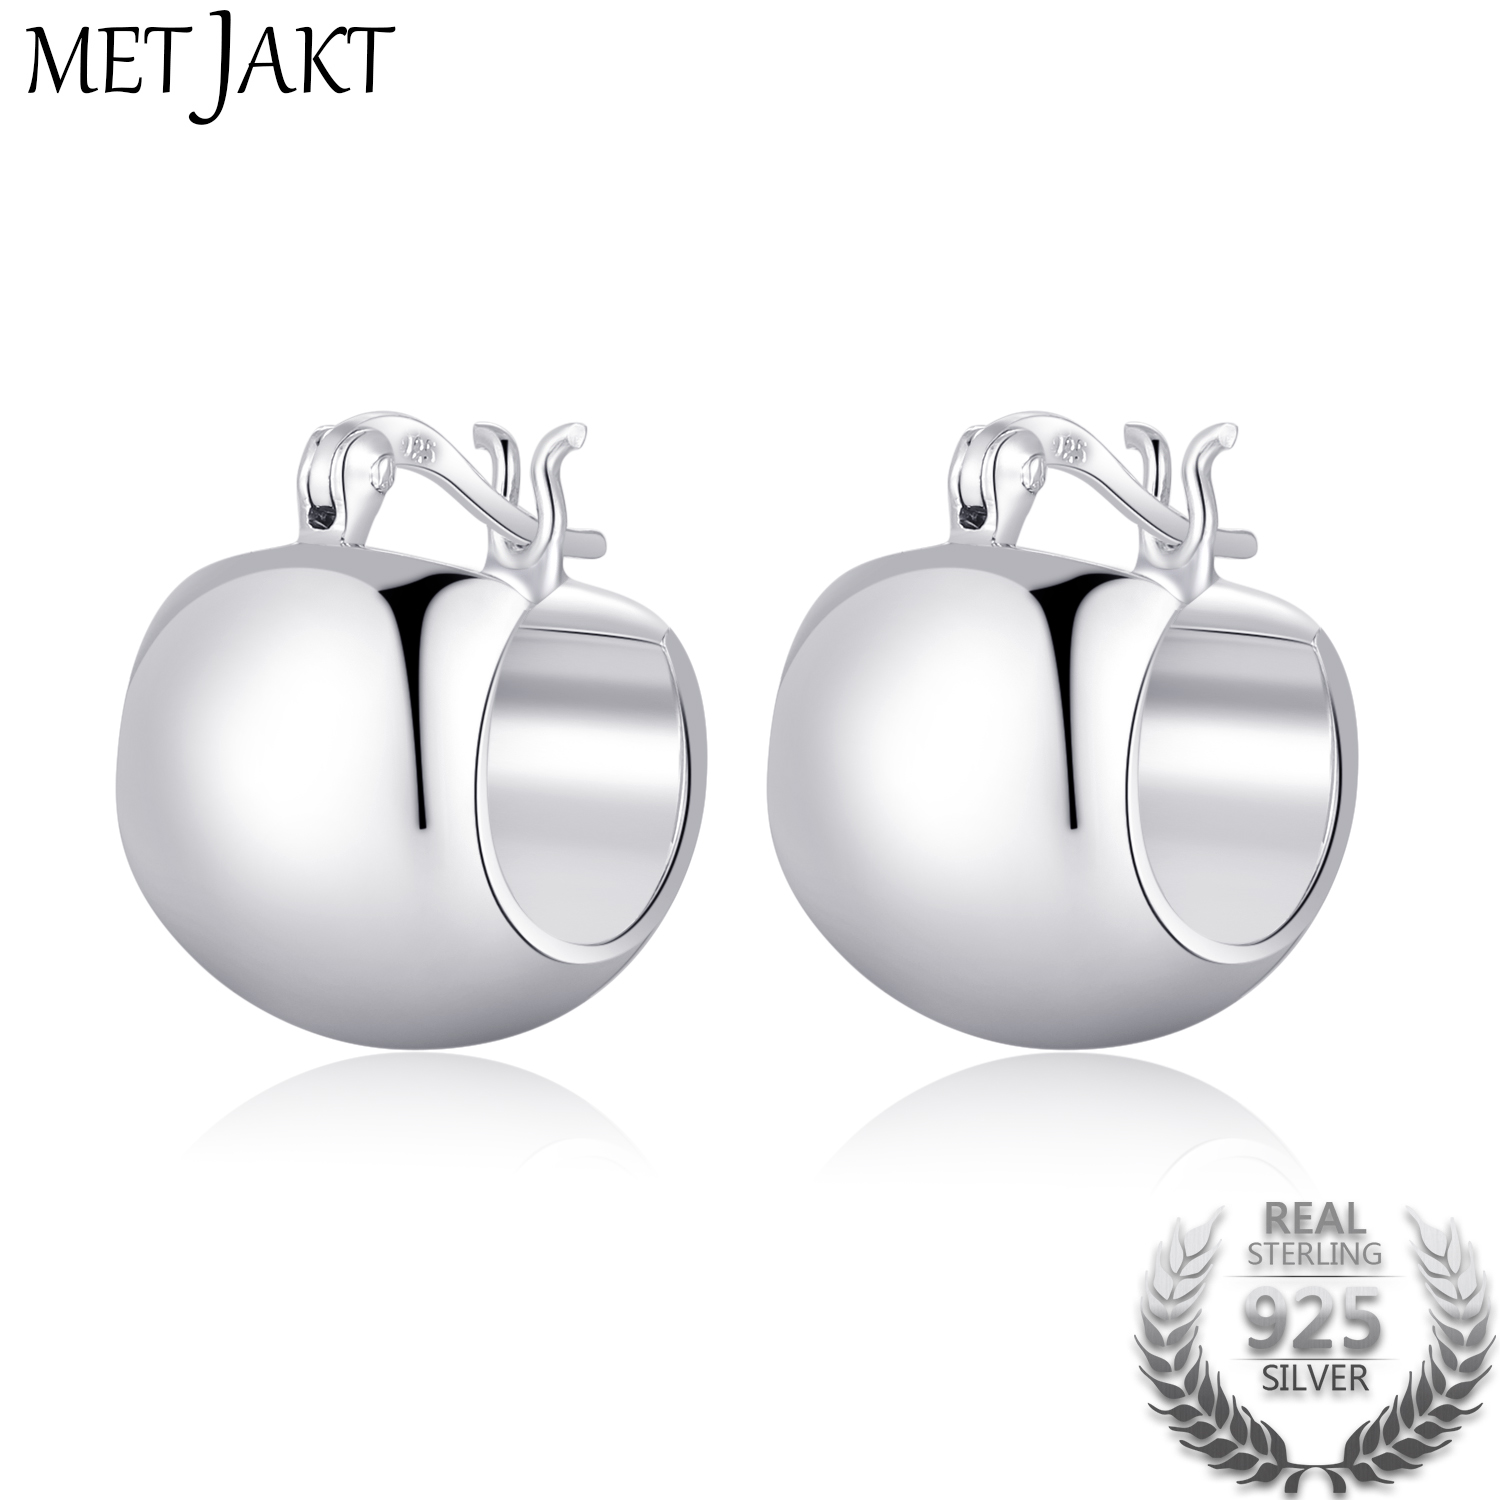 MetJakt Hoop Earrings 925 Sterling Silver Silver Earring for Women Best Gift Fashion Jewelry